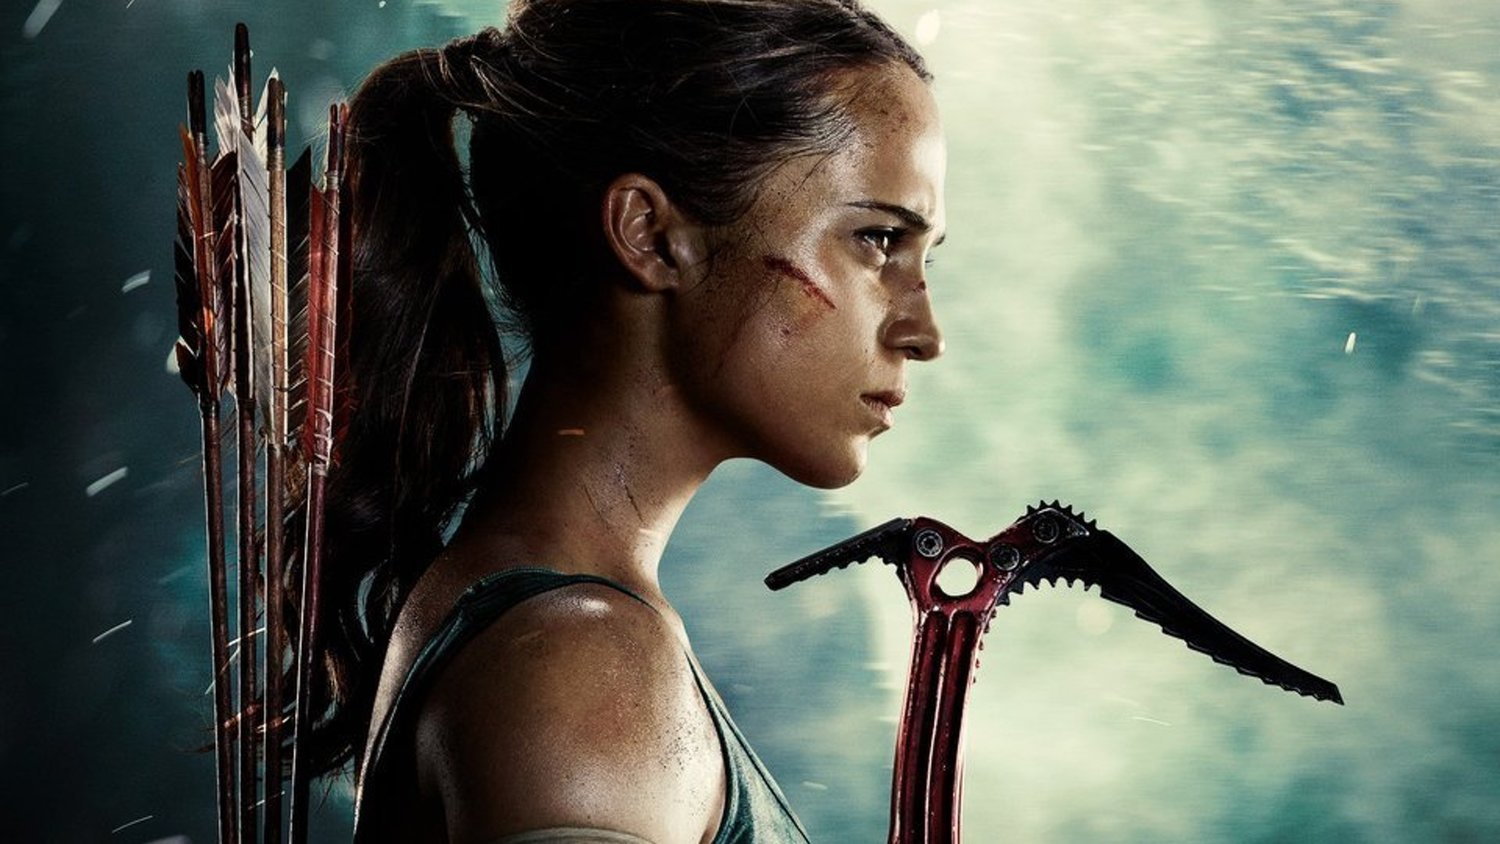 fcac7bef88a6c0 New TOMB RAIDER Photos Feature Alicia Vikander in Action as Lara ...